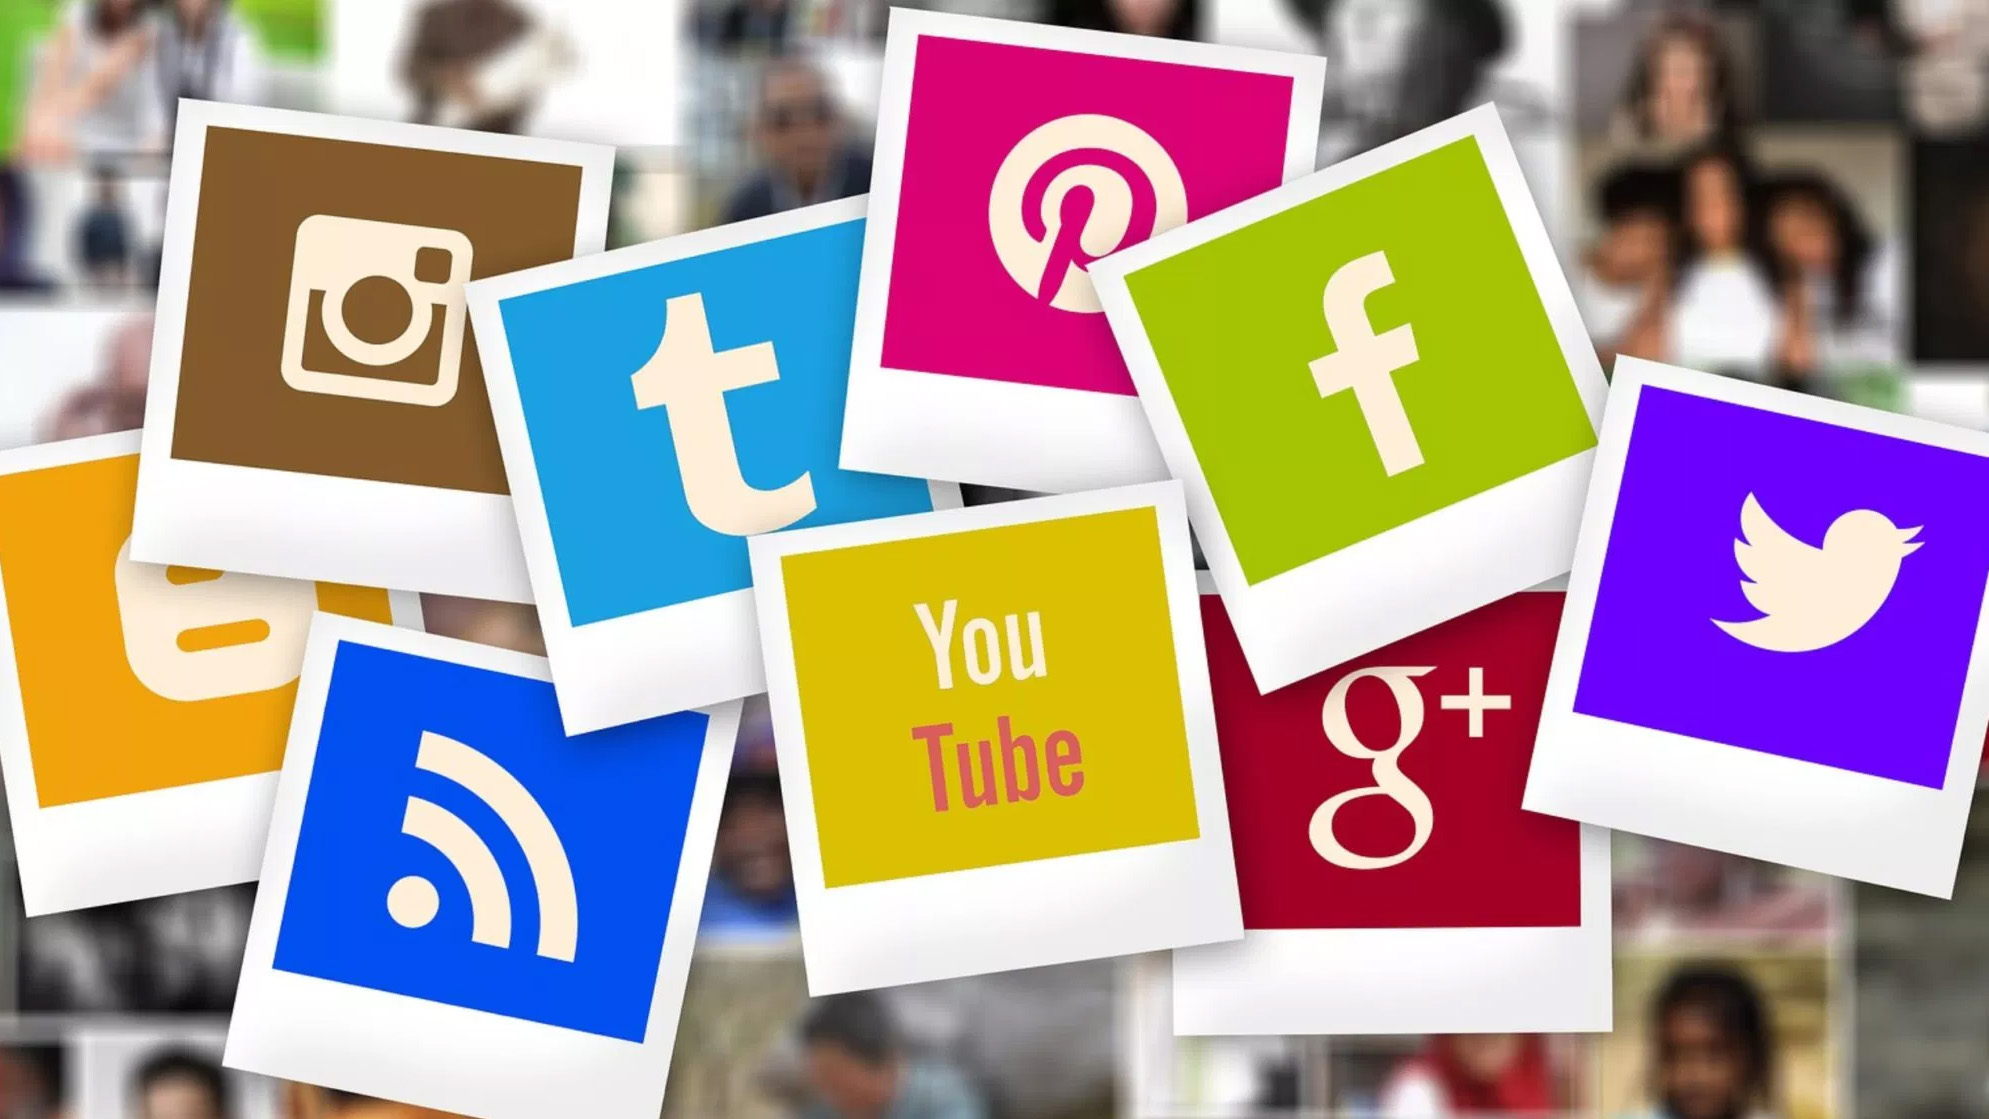 What has social media done for you lately?